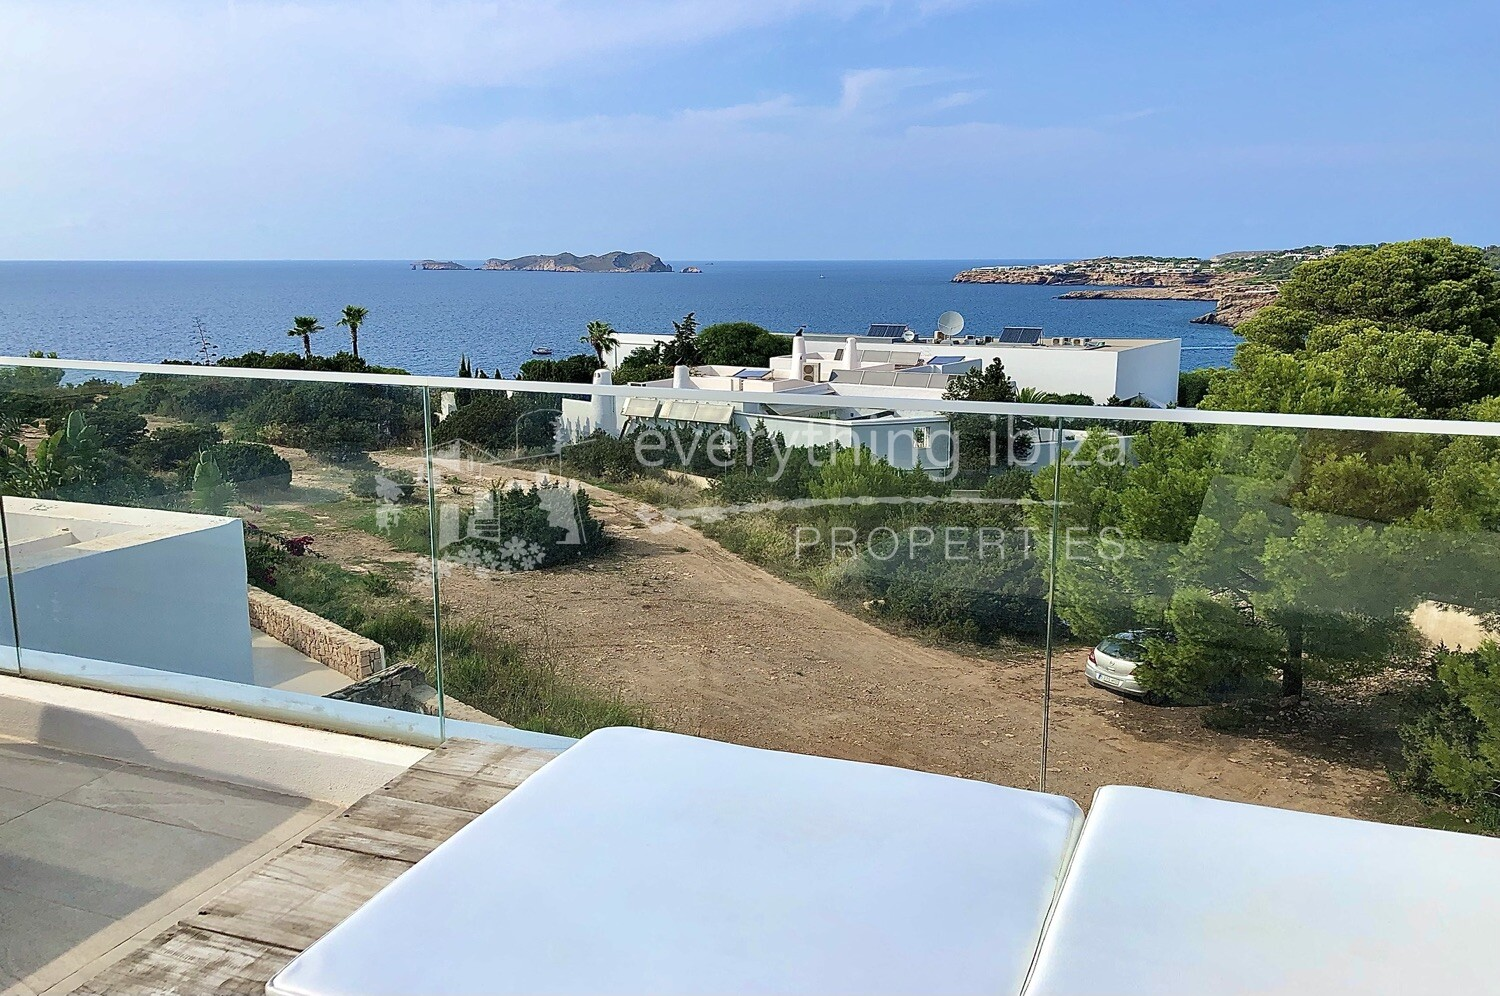 Stylish Townhouse with Sea & Sunset Views, ref. 1393, for sale in Ibiza by everything ibiza Properties